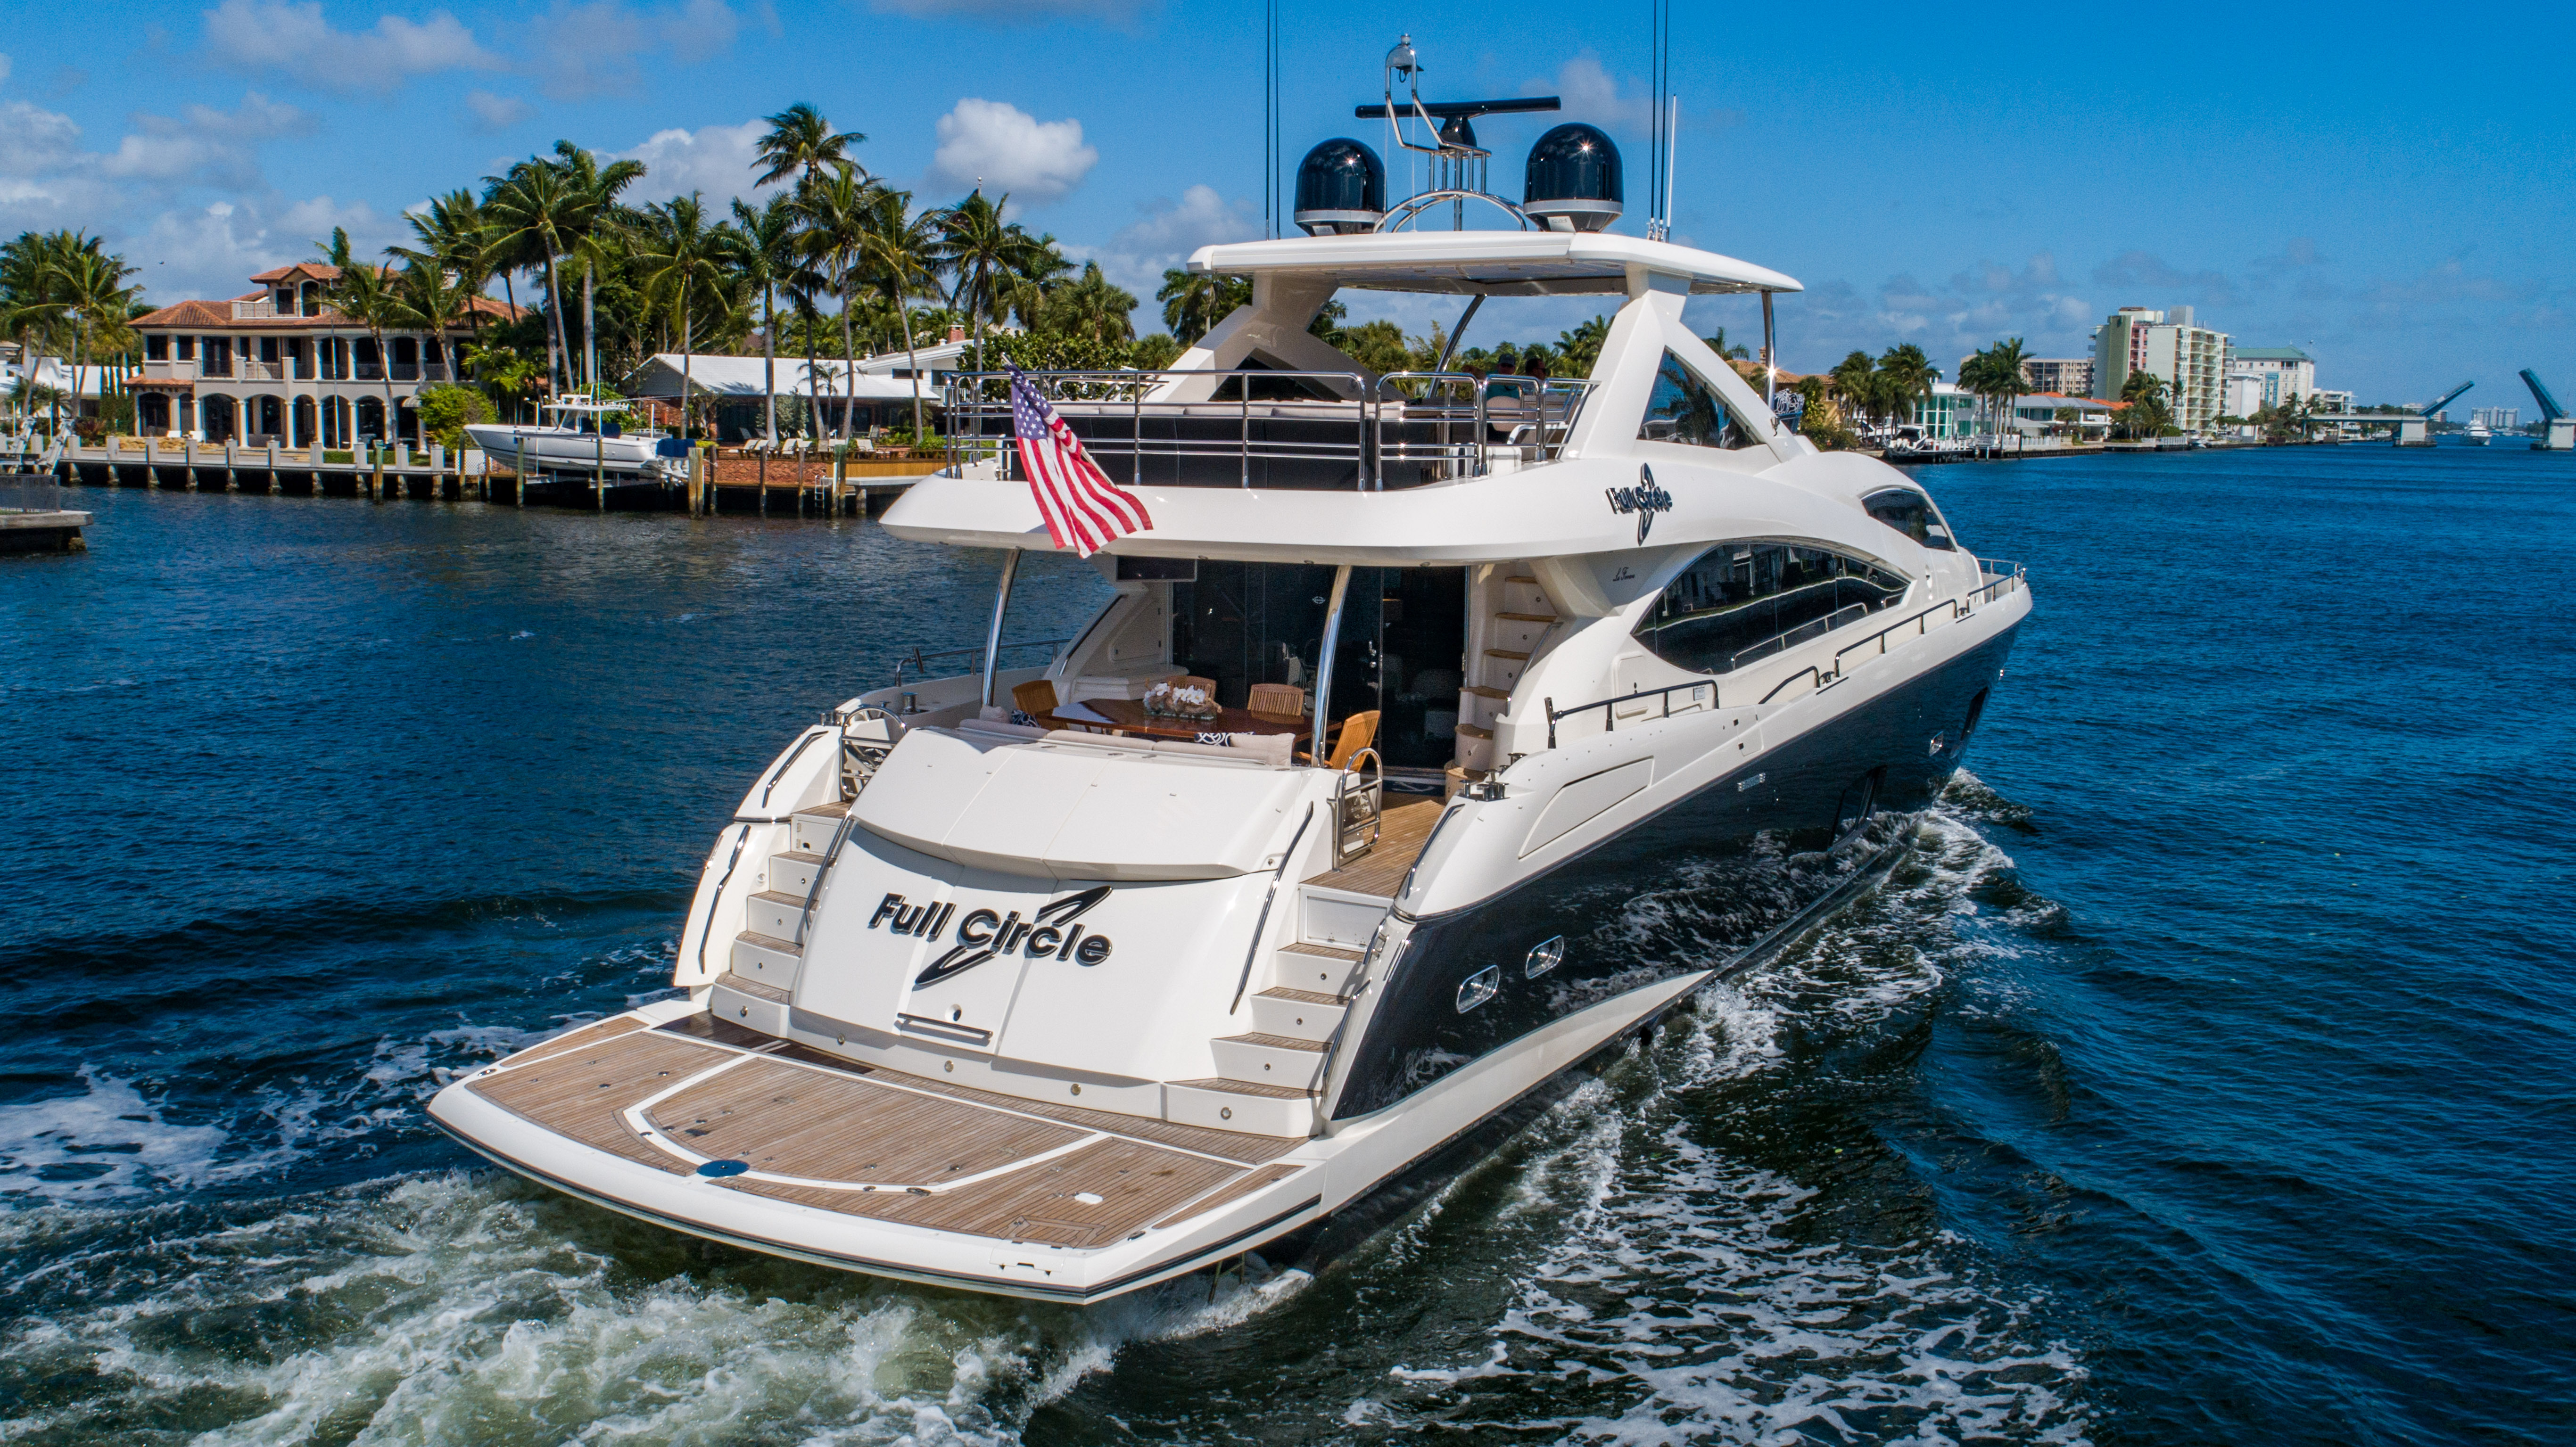 88-2014-sunseeker-full-circle-02